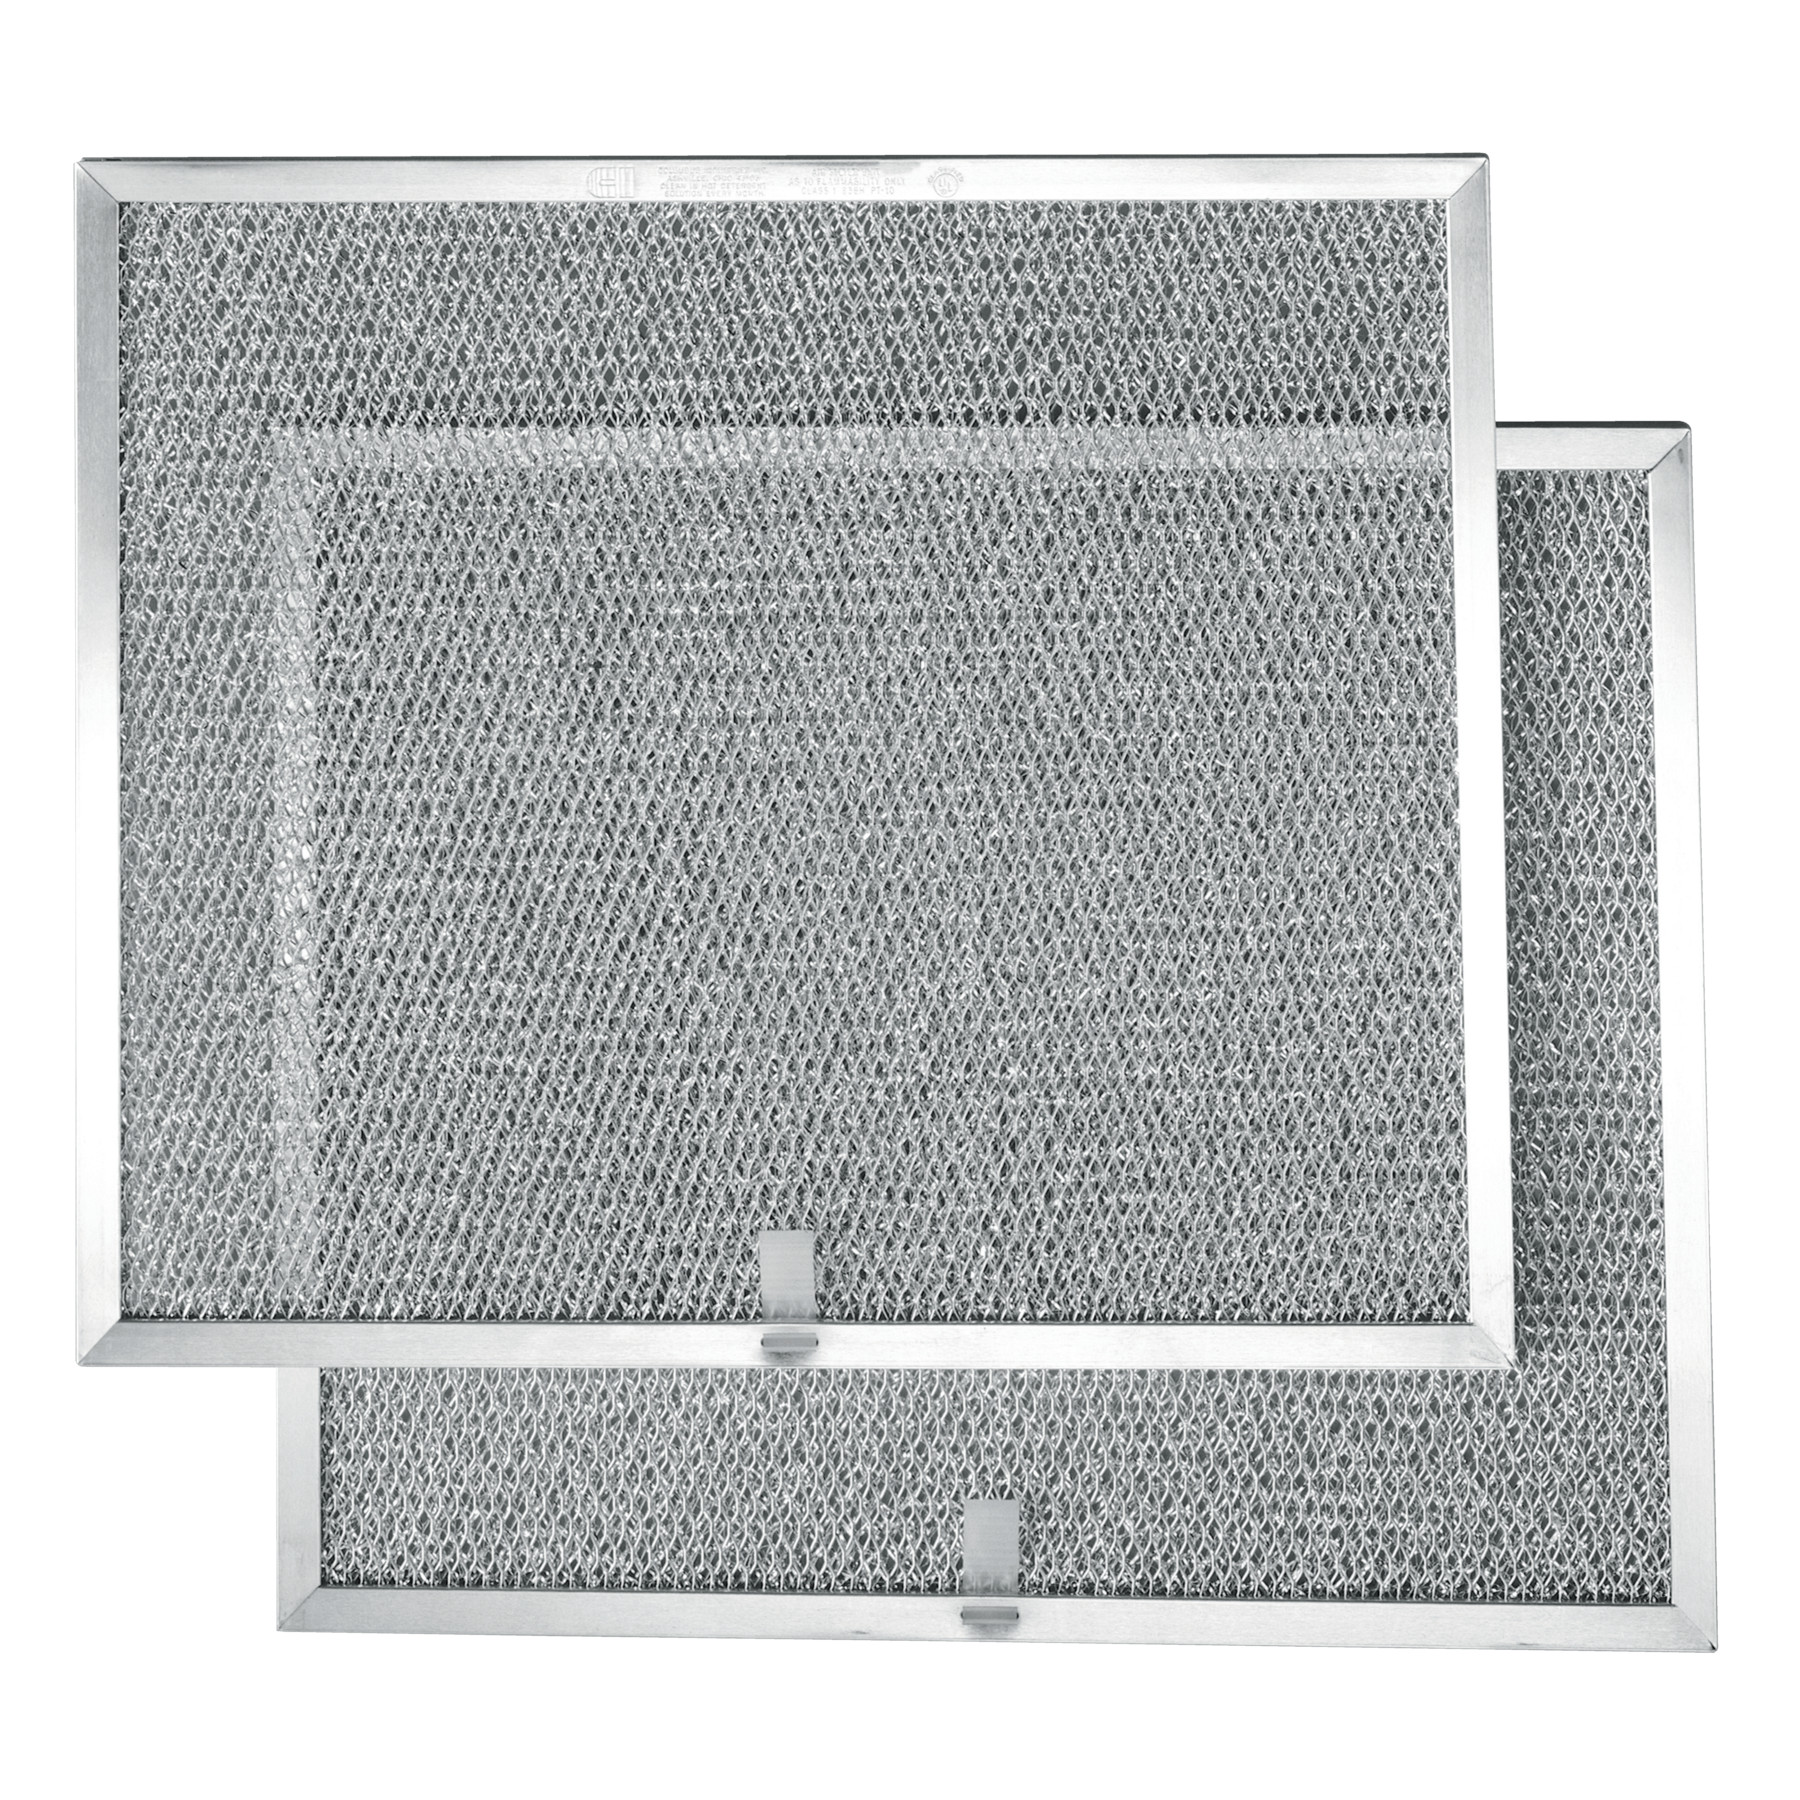 Aluminum Filter for 30-Inch wide QS1 Series Range Hood